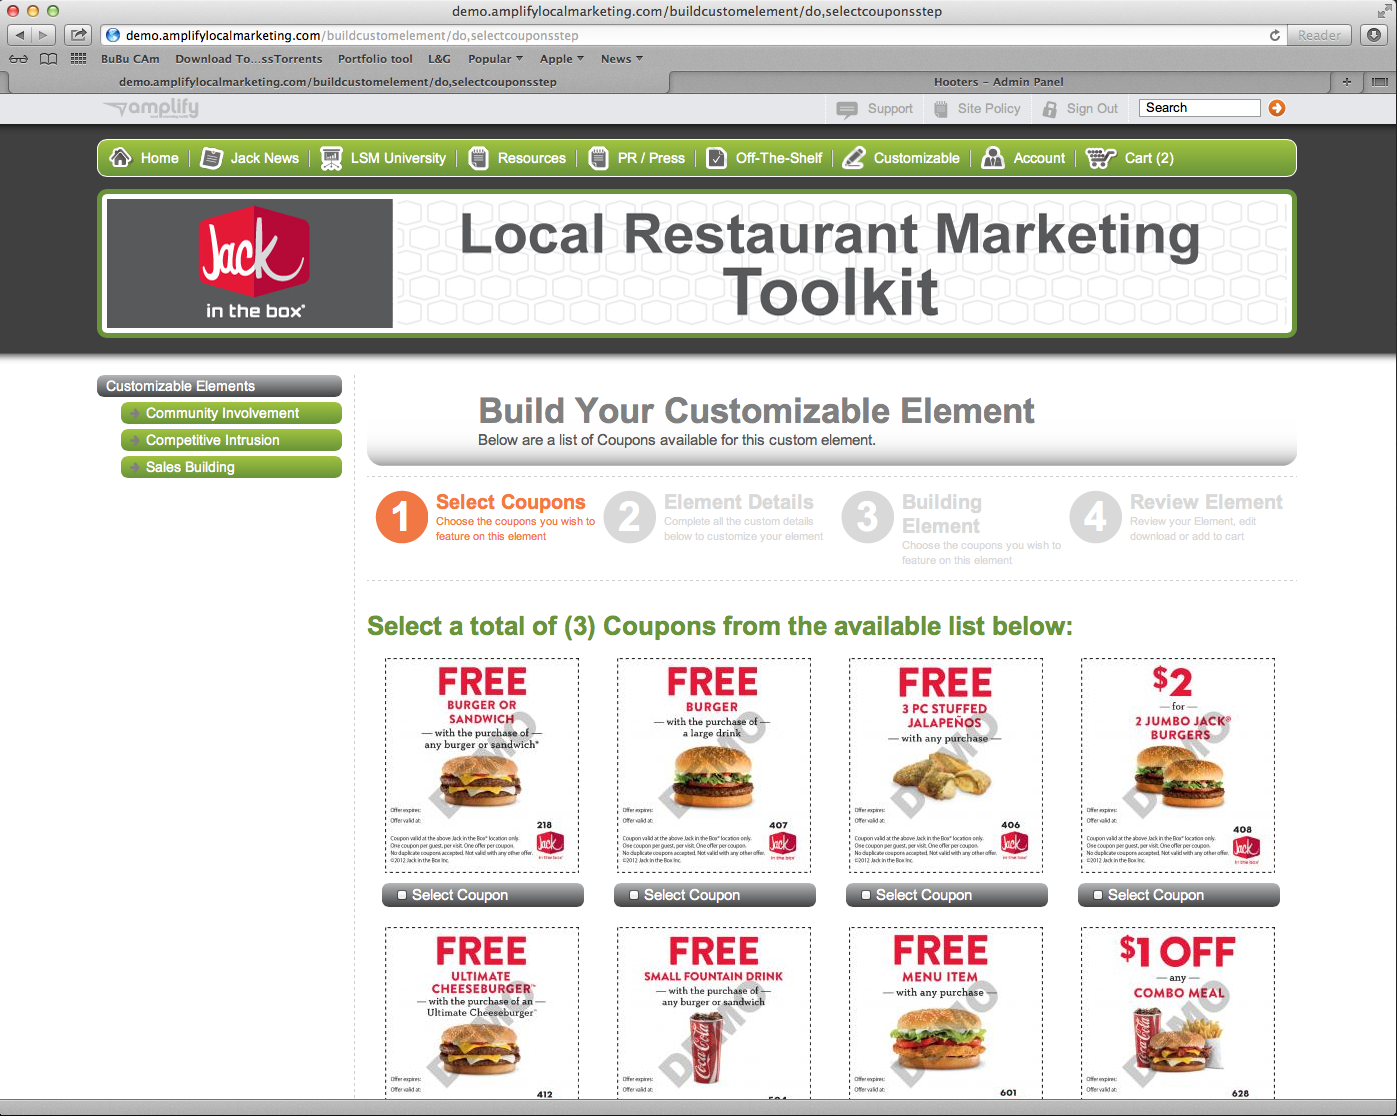 http://amplifylocalmarketing.com/wp-content/uploads/2013/02/Screen-Shot-2013-02-12-at-4.49.27-PM.png